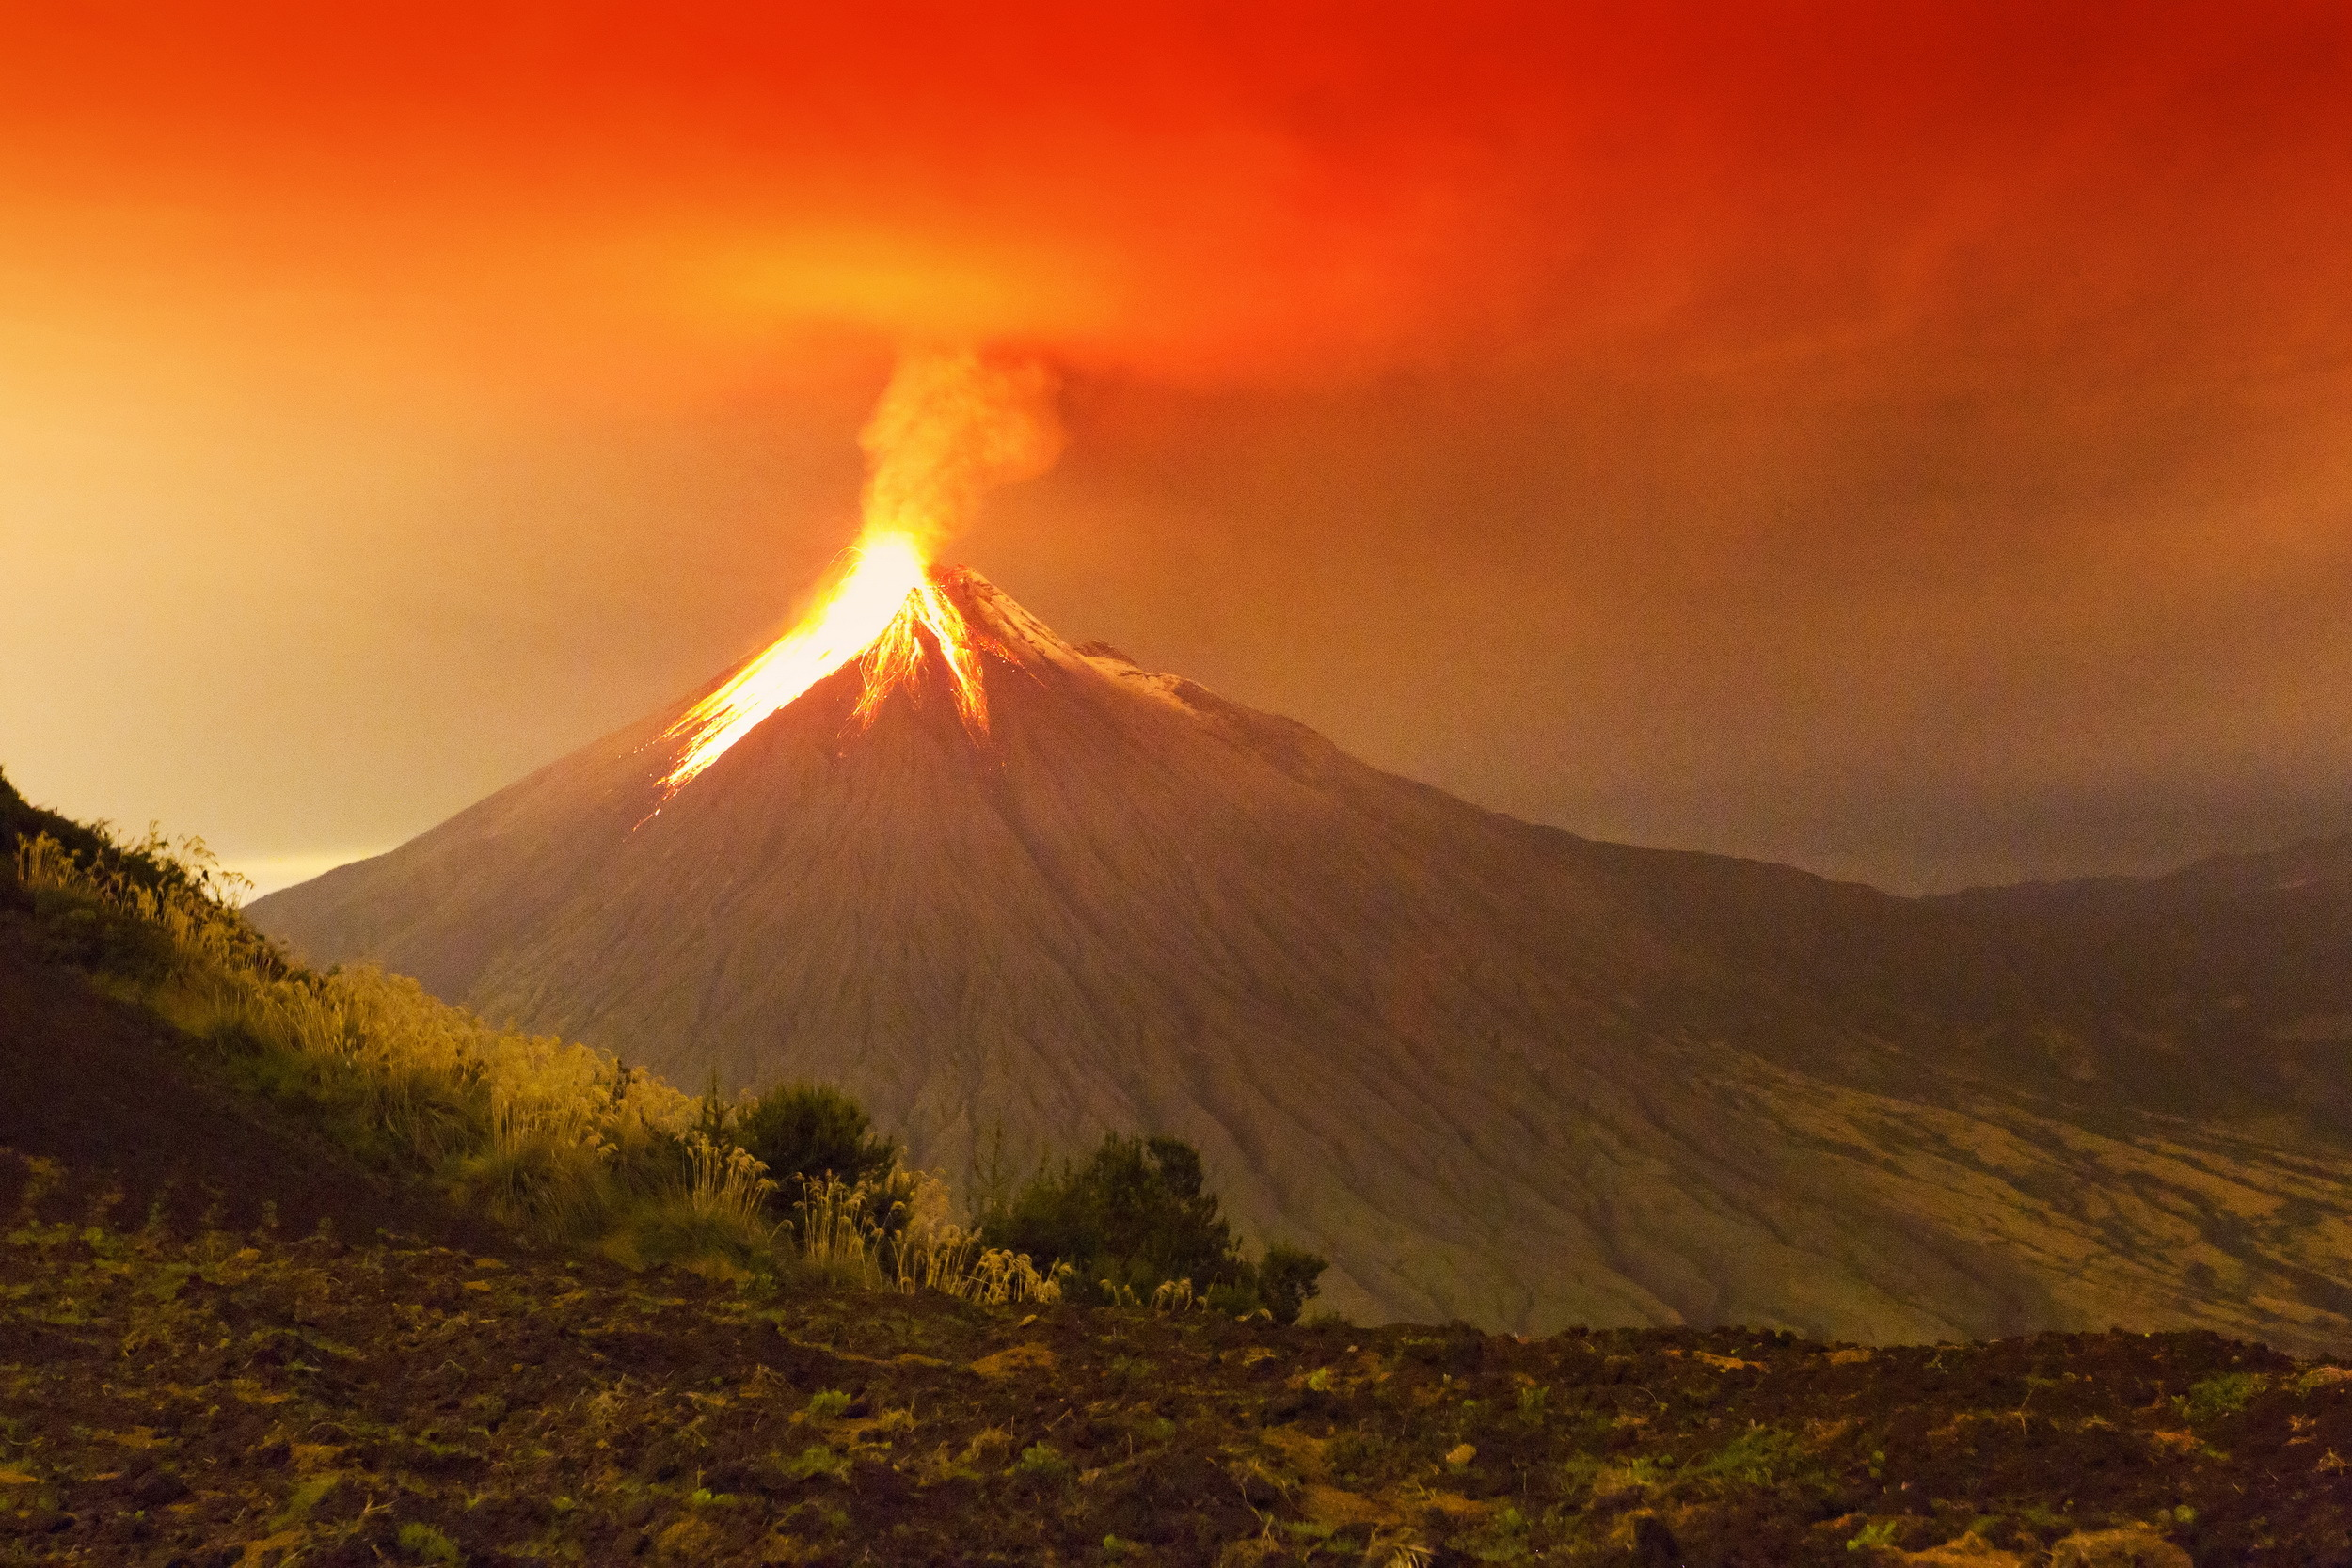 Satellite measurements and mathematical methods are helping scientists predict volcanic eruptions, according to a new study.